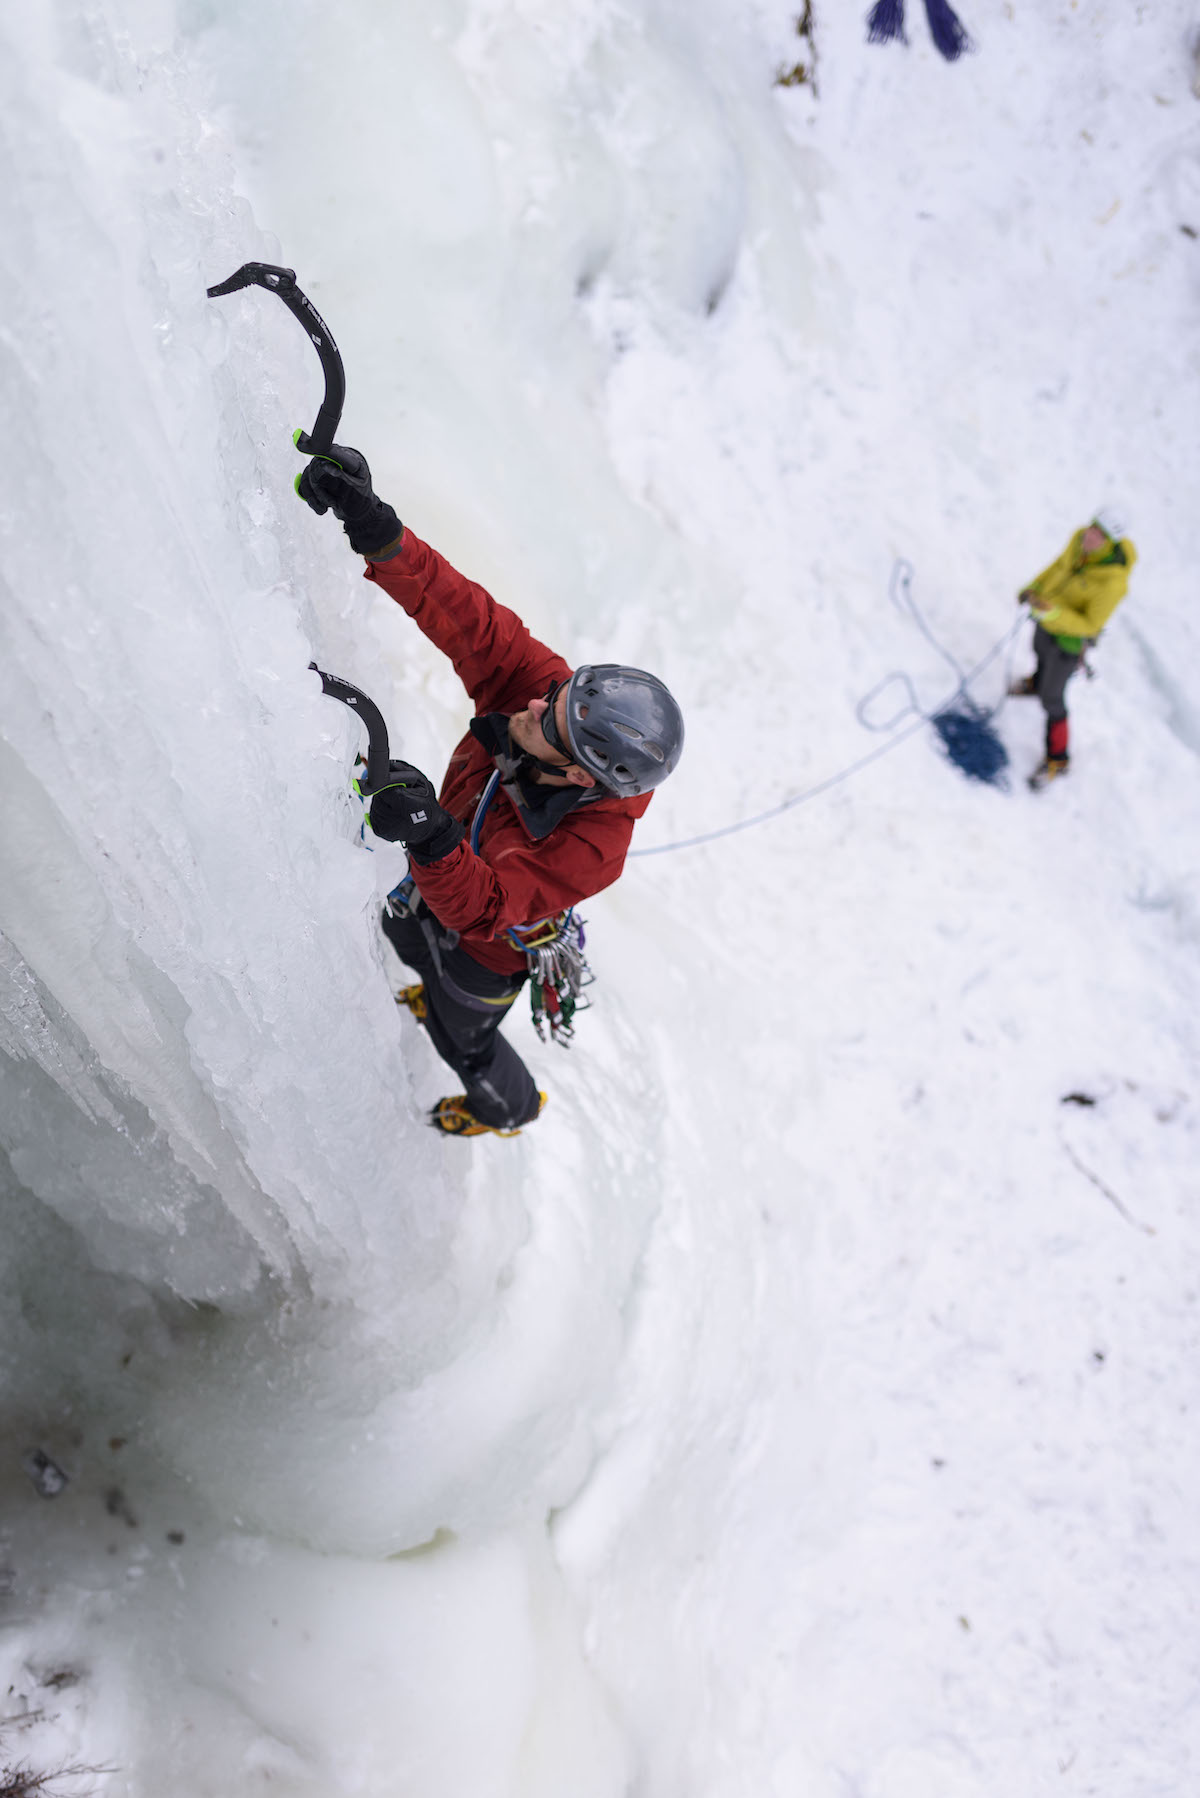 Todd Preston leads Alpha (WI5) with the Black Diamond Reactor ice tools in Hyalite Canyon, Montana. [Photo] Jim Menkol